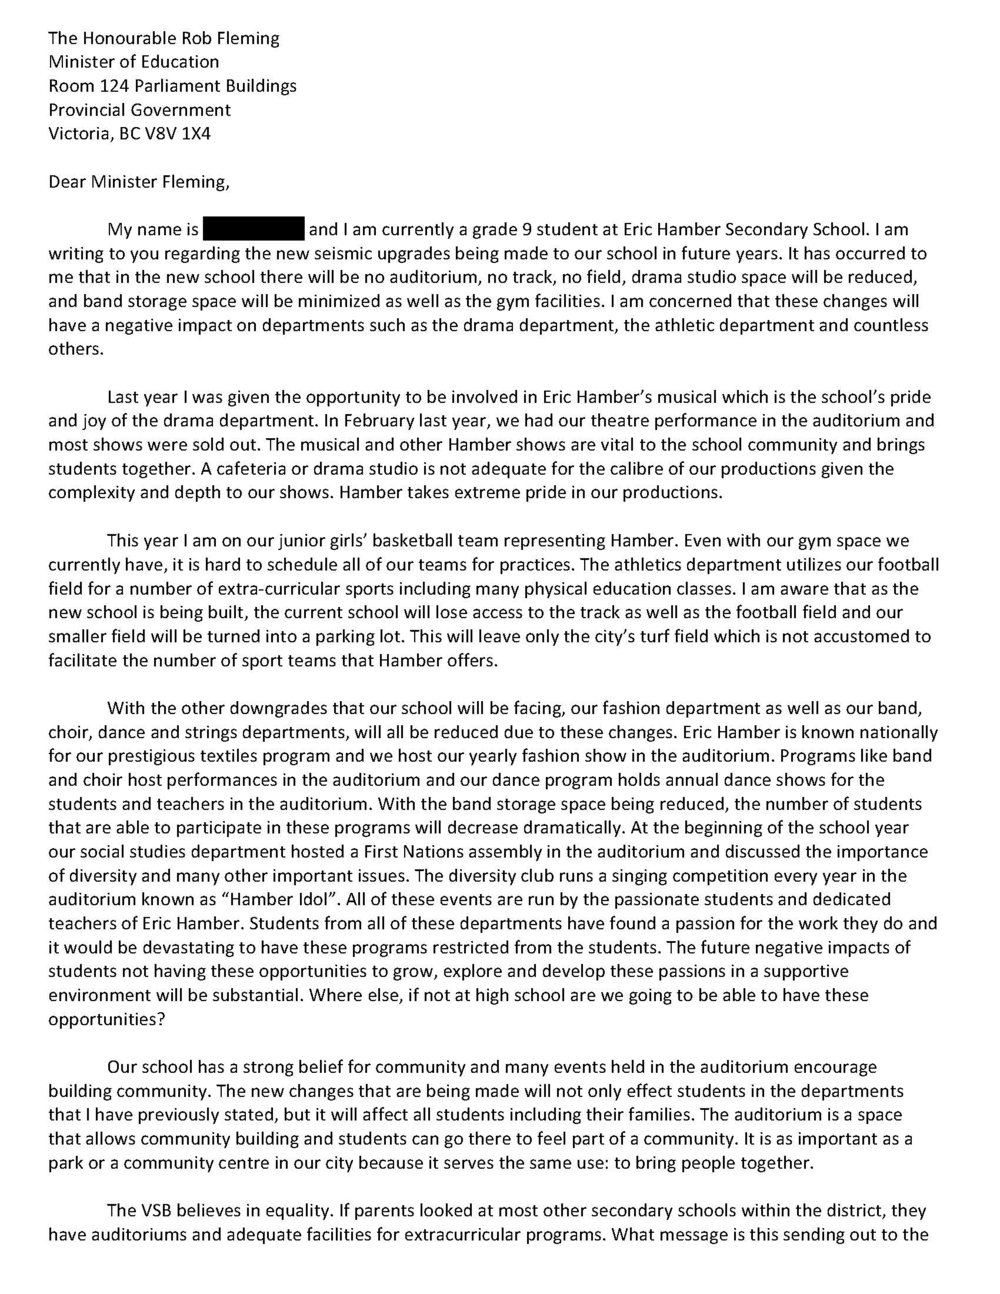 letter to education minister - marissa lear_Page_1.jpg